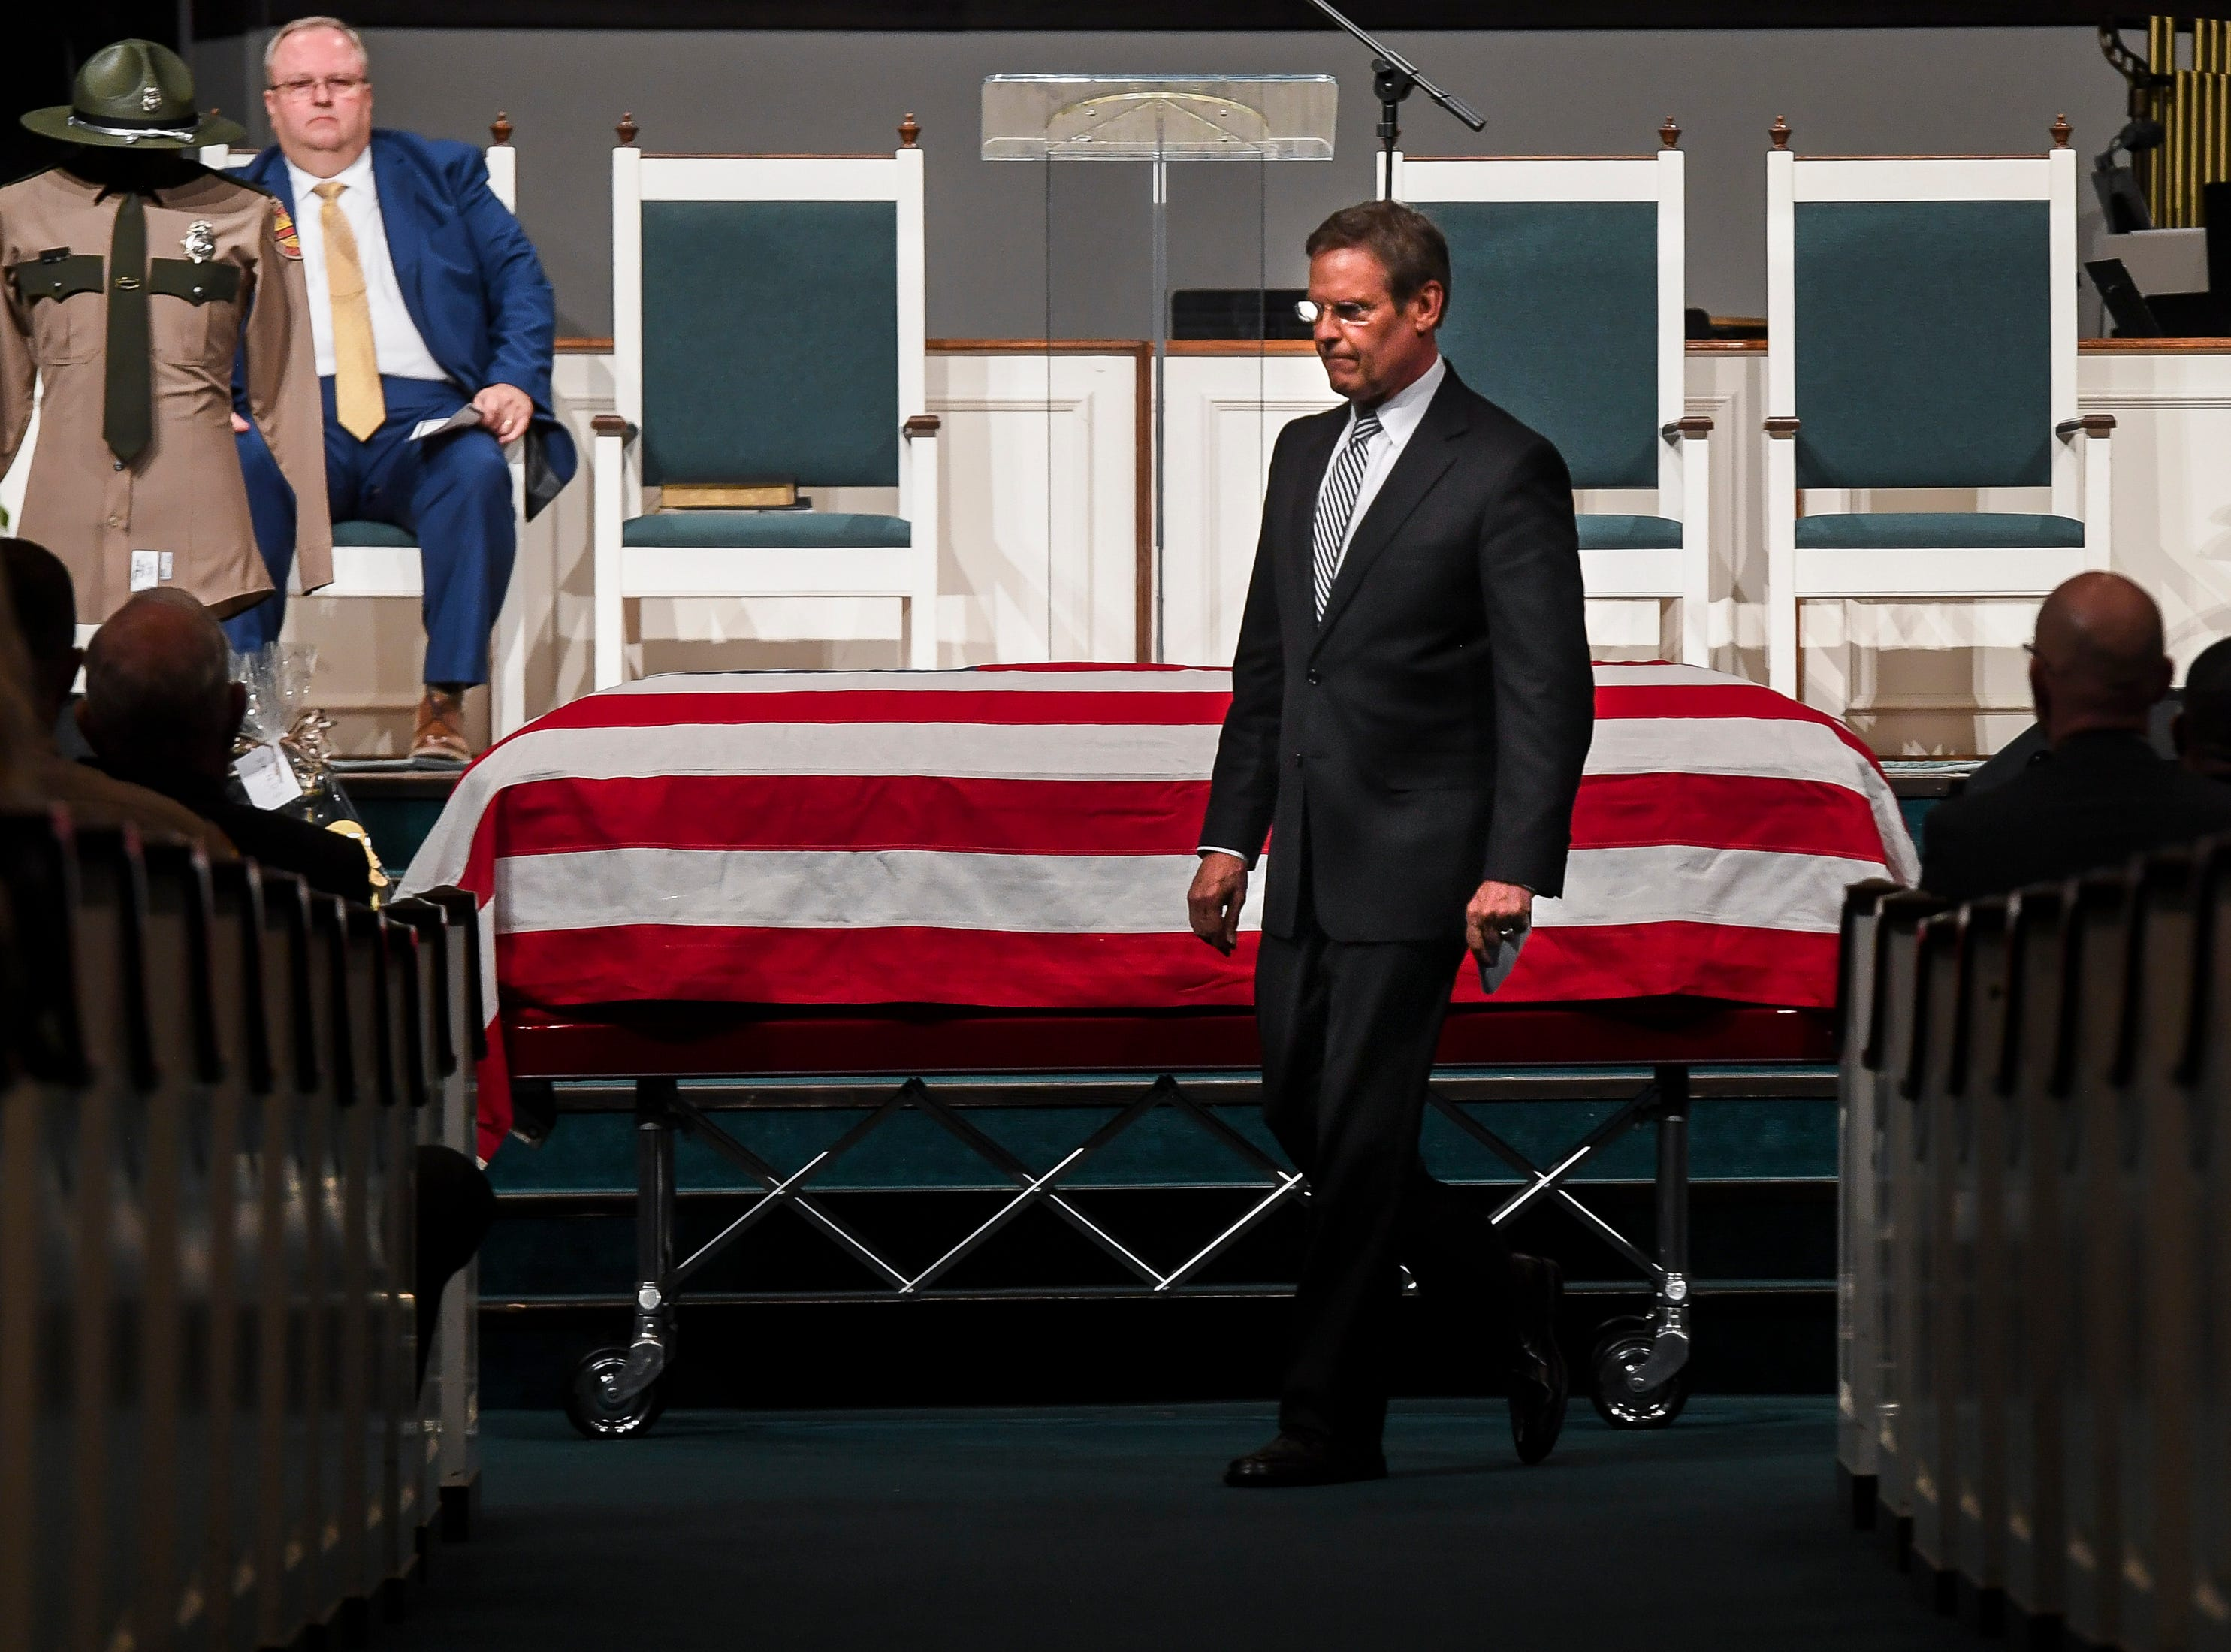 Tennessee Governor Bill Lee heads back to his seat after delivering remarks during the funeral service for Tennessee State Trooper Matthew Gatti at West Jackson Baptist Church in Jackson, Tenn., Monday, May 13, 2019. Gatti died in the line of duty in an accident while responding to a car fire on I-40 in Madison County on May 6.